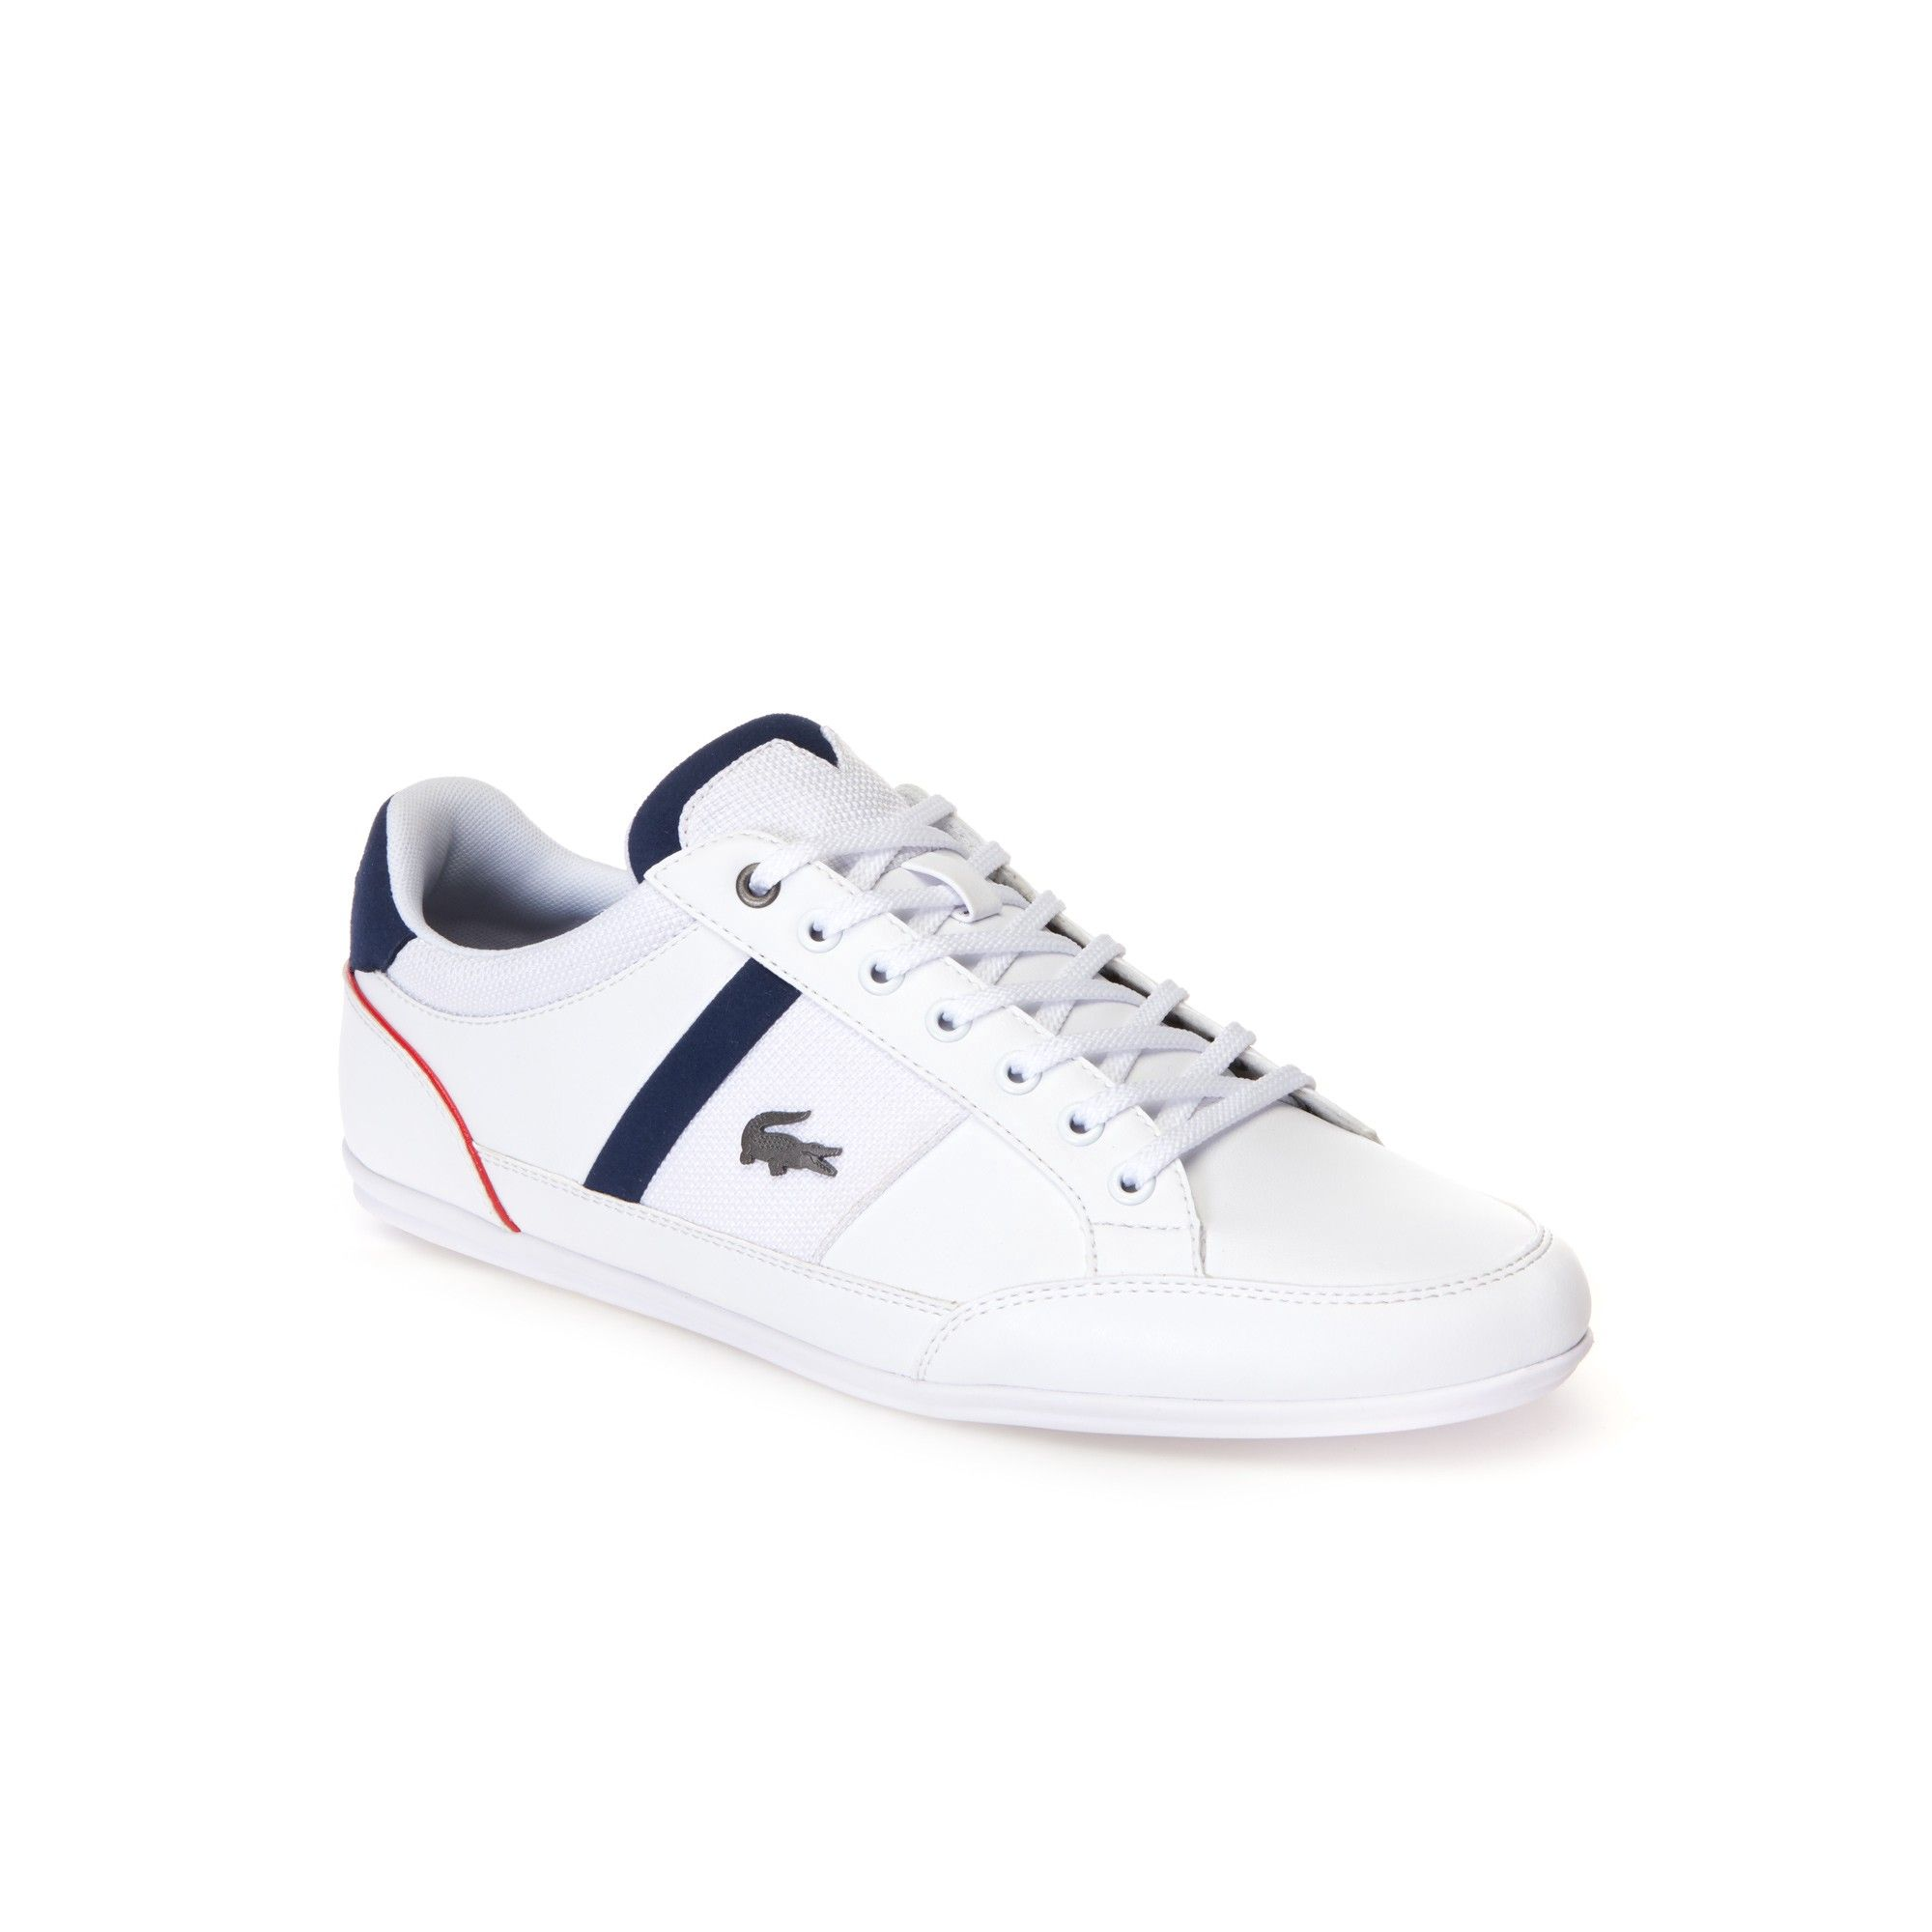 db03cefe6836 LACOSTE Men s Chaymon Nappa Leather and Mesh Trainers.  lacoste  shoes